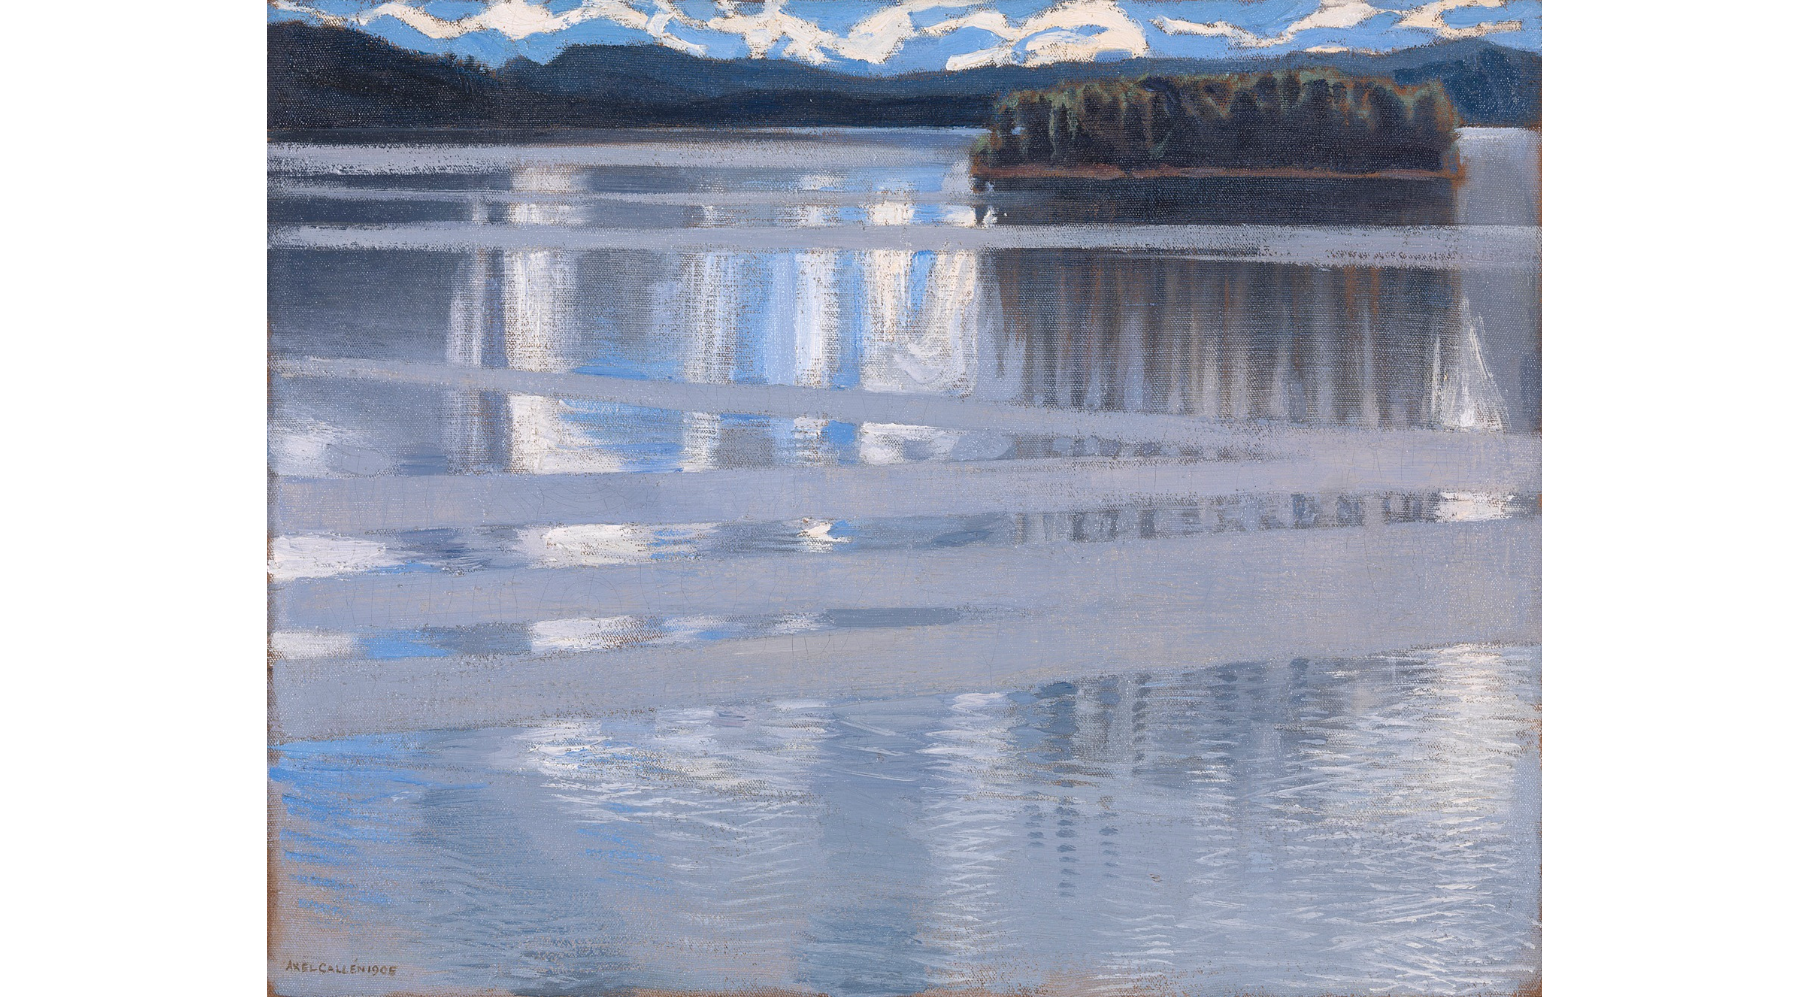 ('Lake Keitele' (1905) by Akseli Gallen-Kallela, chosen by Chris Watson)